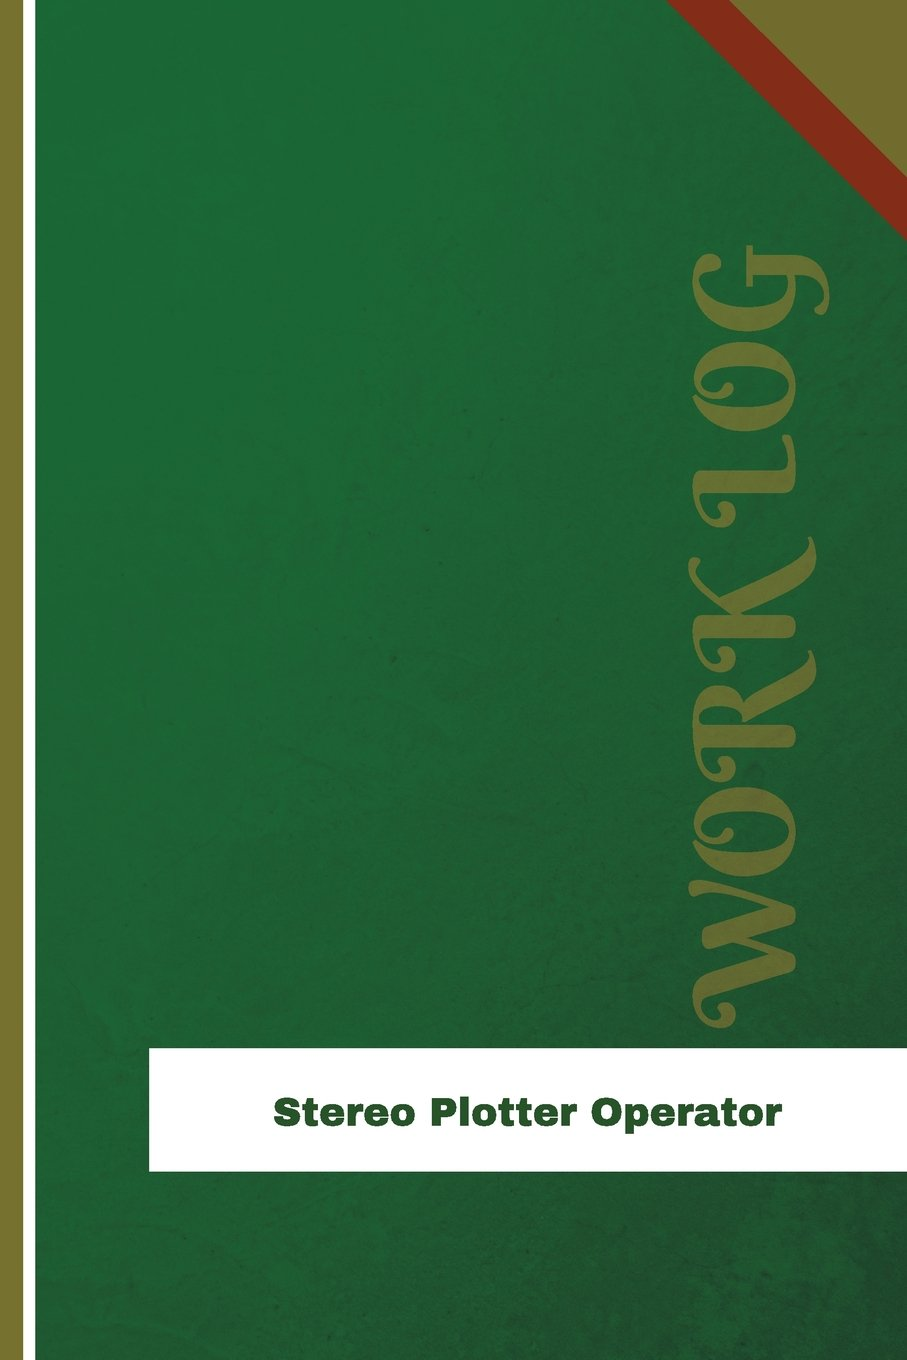 Stereo Plotter Operator Work Log: Work Journal, Work Diary, Log - 126 pages, 6 x 9 inches Orange Logs/Work Log: Amazon.es: Logs, Orange: Libros en idiomas extranjeros